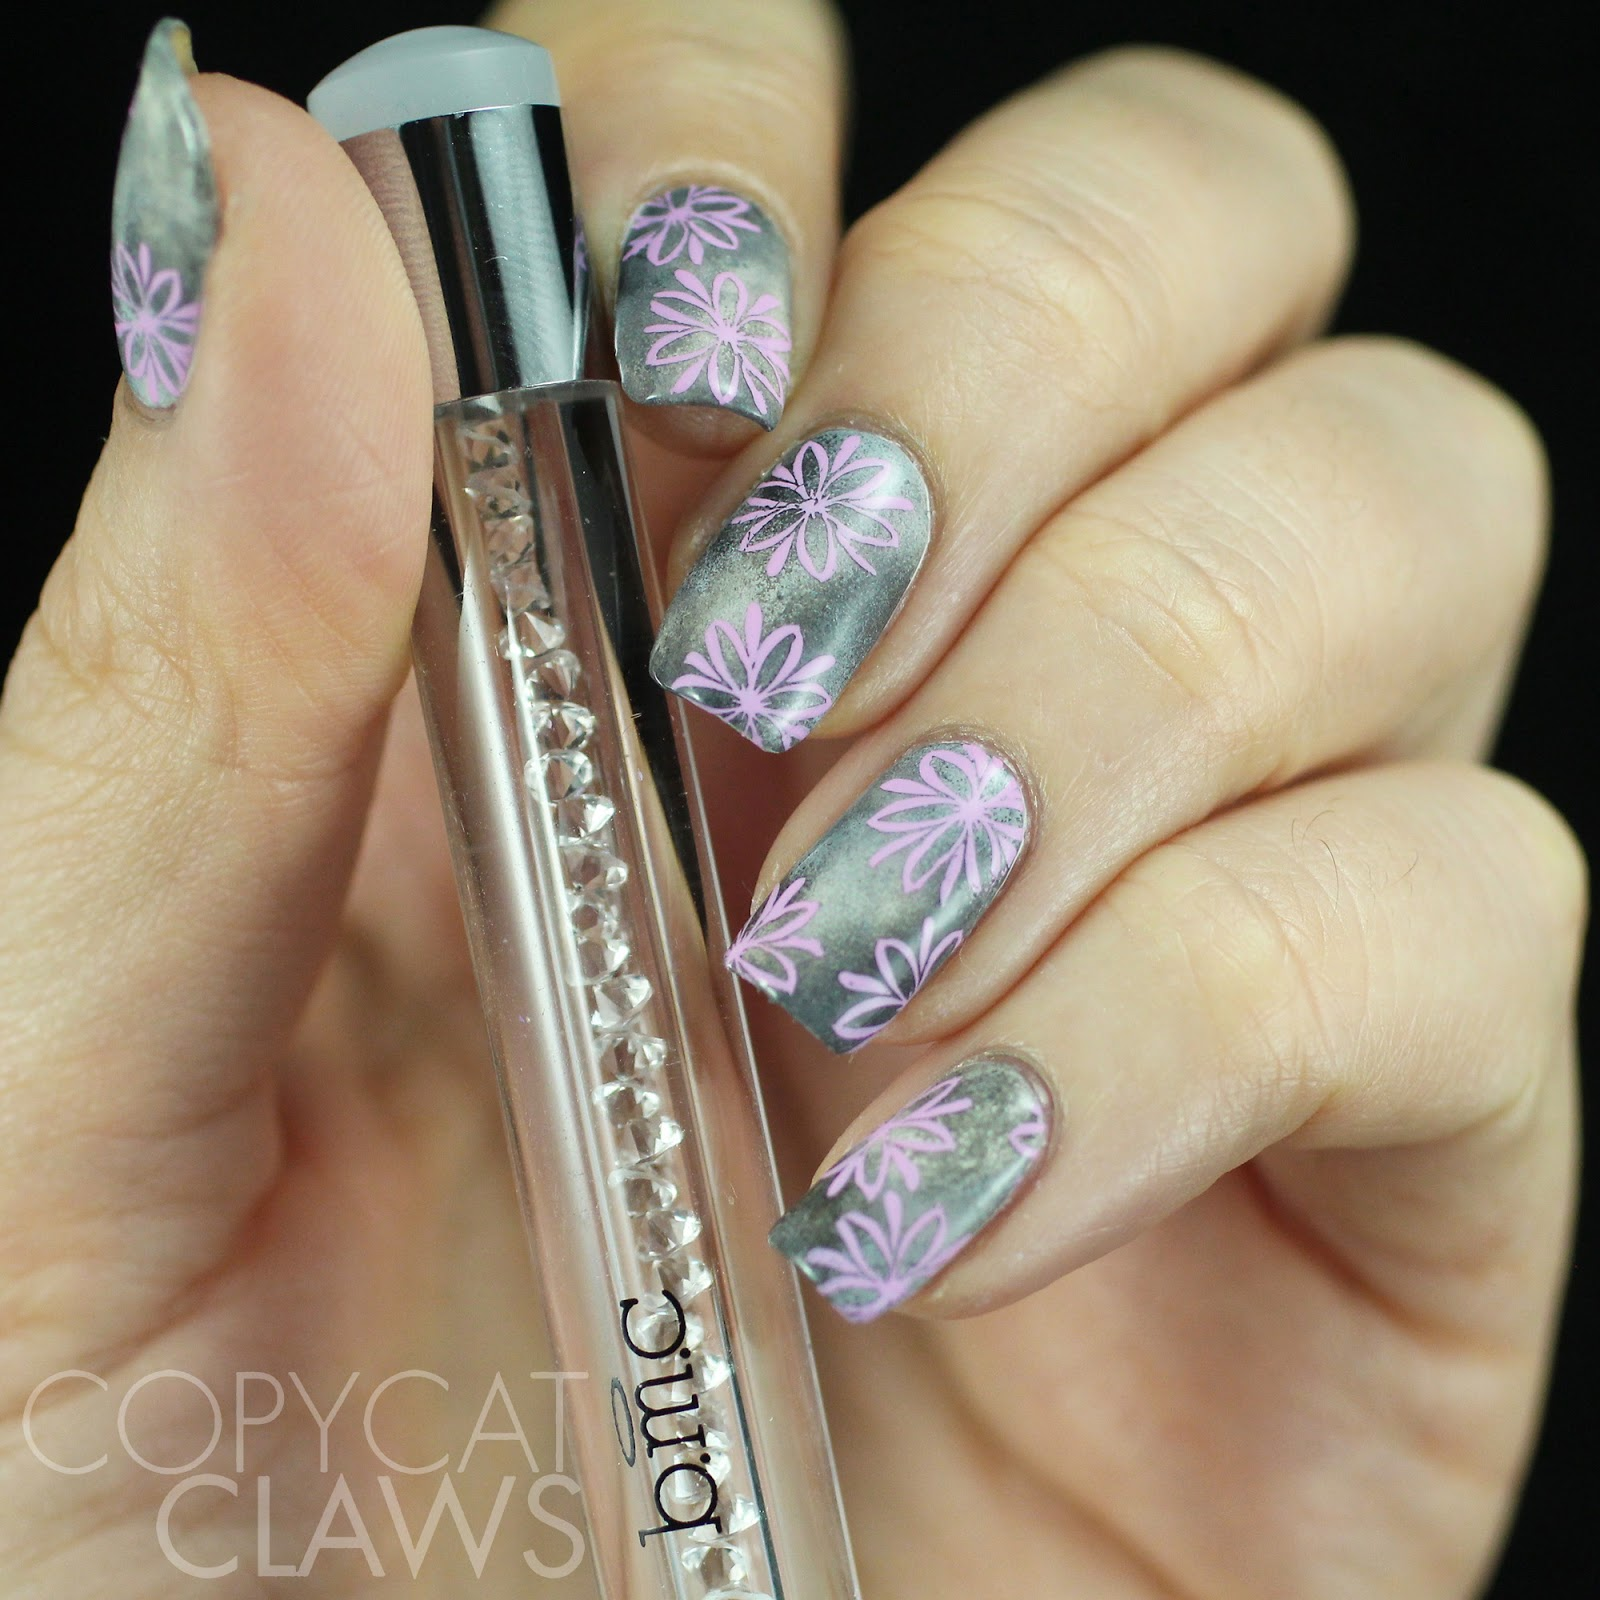 Copycat Claws: Bundle Monster Pencil Stamper/Clean Up Brush Review